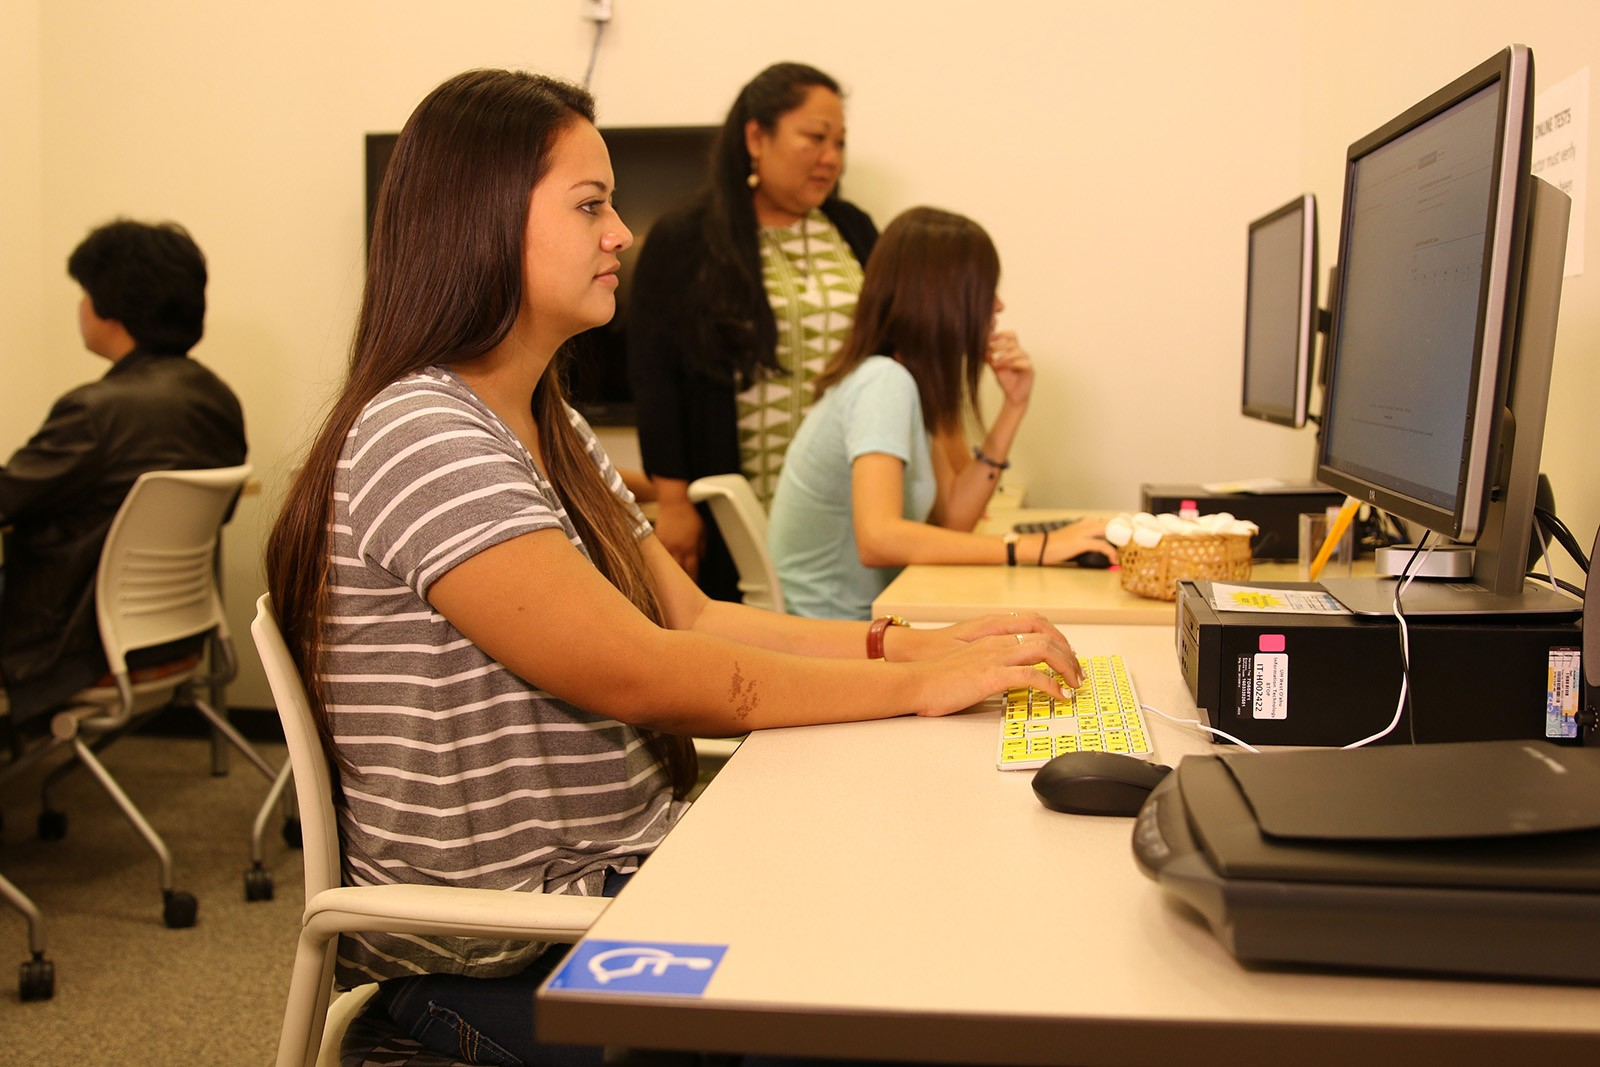 Photo of two people taking tests at desktop computers with a test proctor in the background